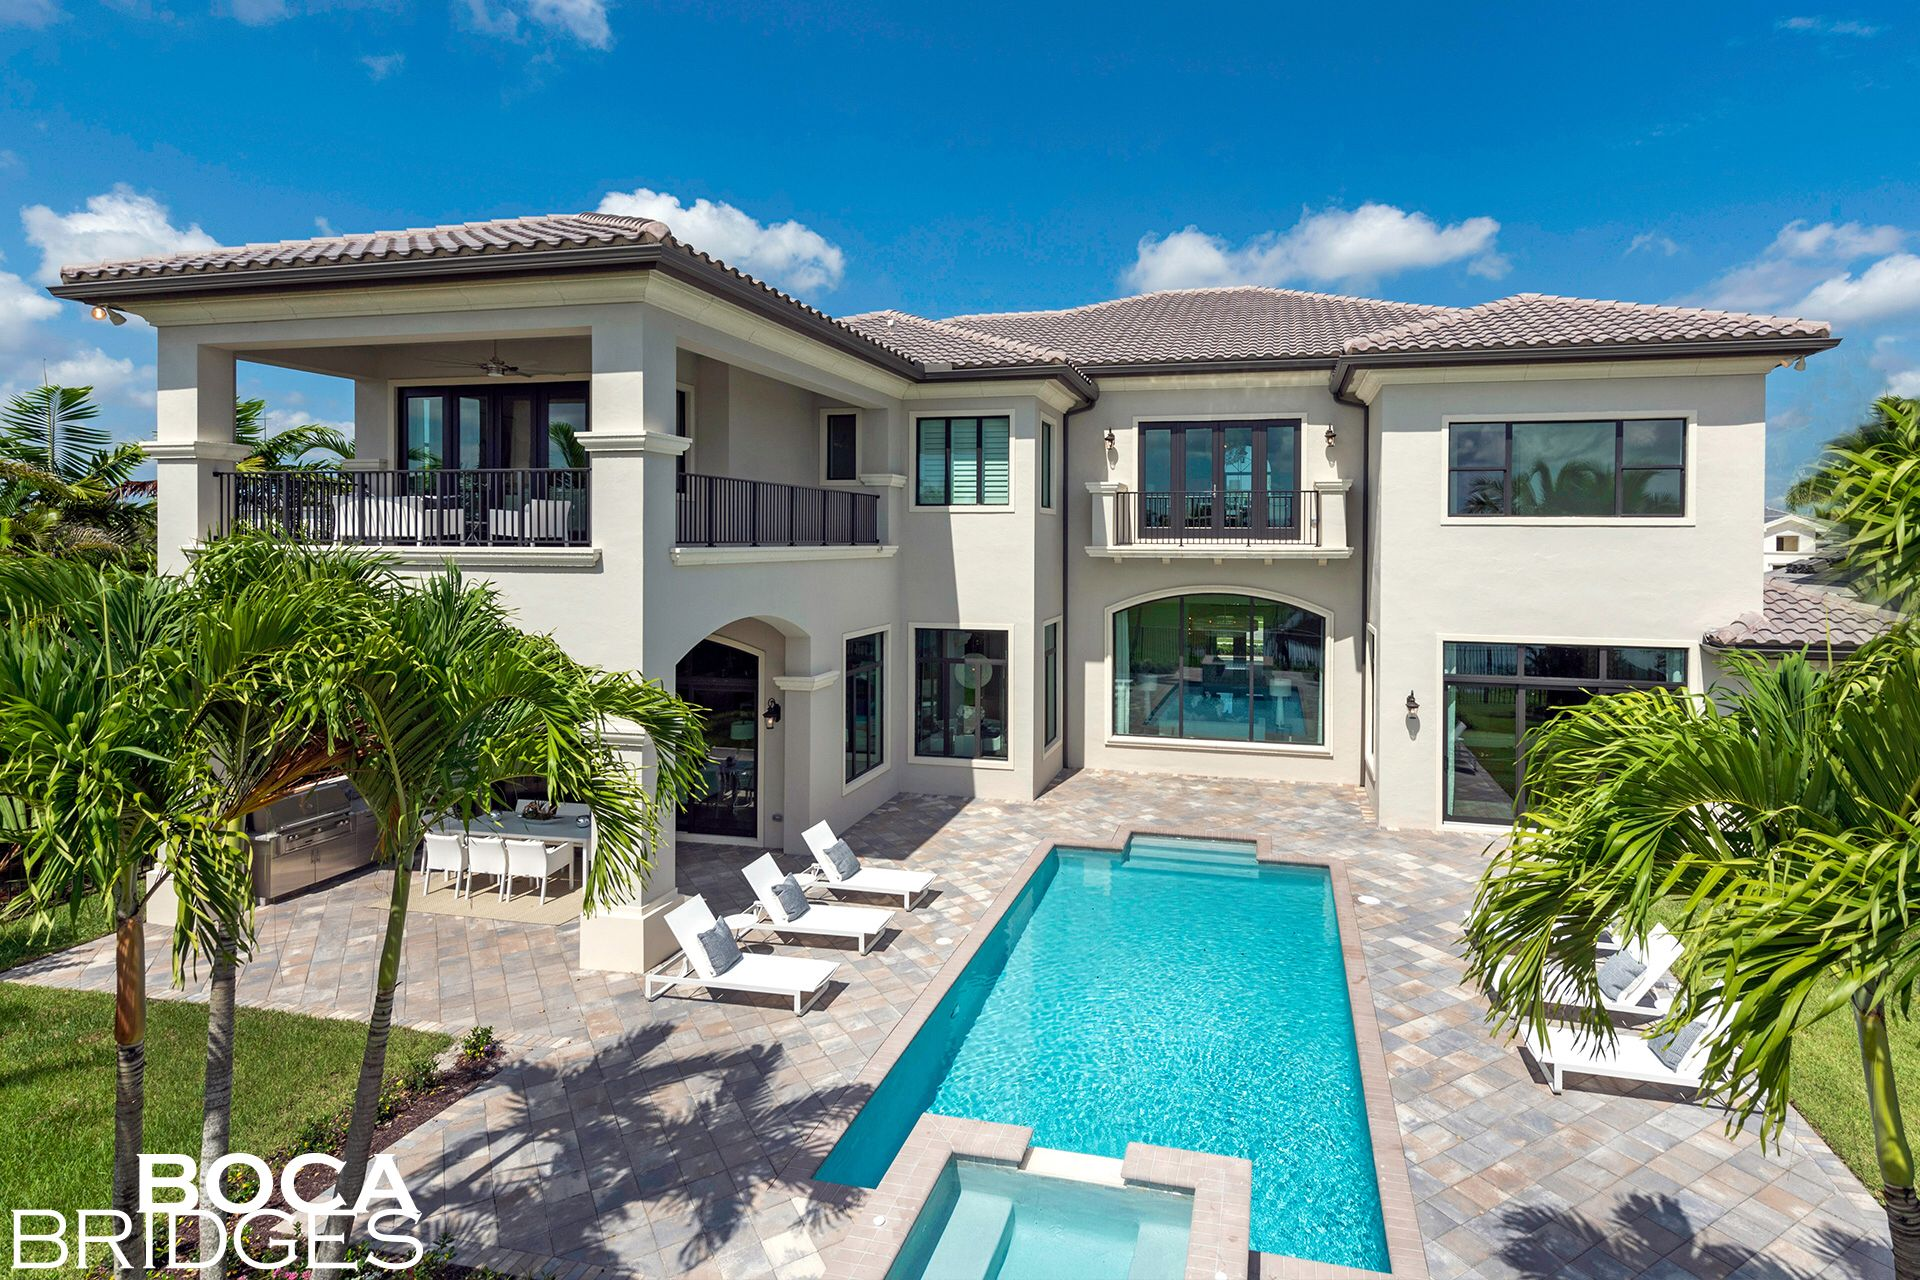 Luxury New Homes In Boca Raton Florida Real Estate Gl Homes Florida Homes For Sale Luxury Townhouse Florida Real Estate